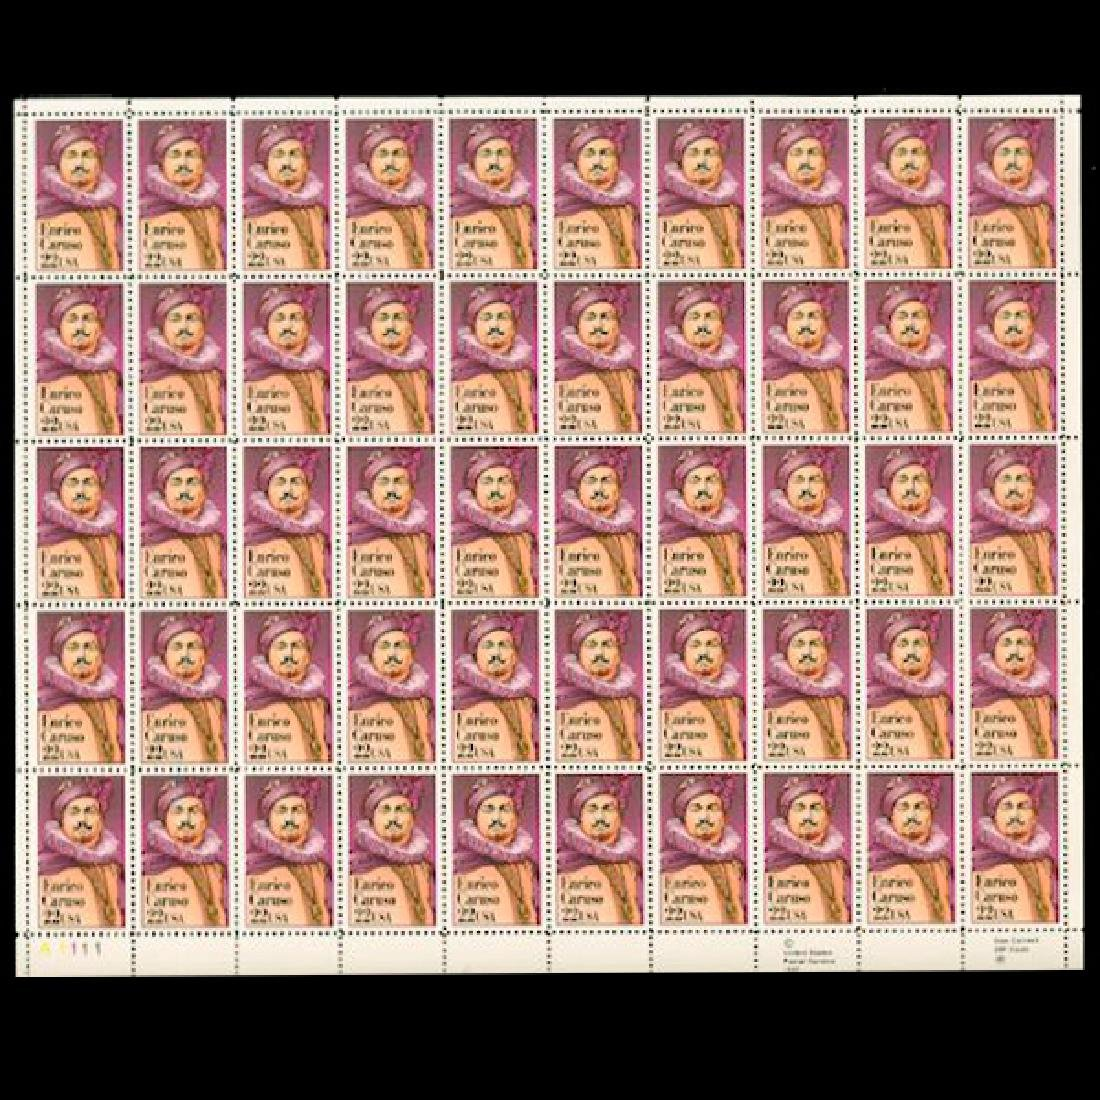 1987 US Sheet 22c Enrico Caruso Stamps MNH Scarce